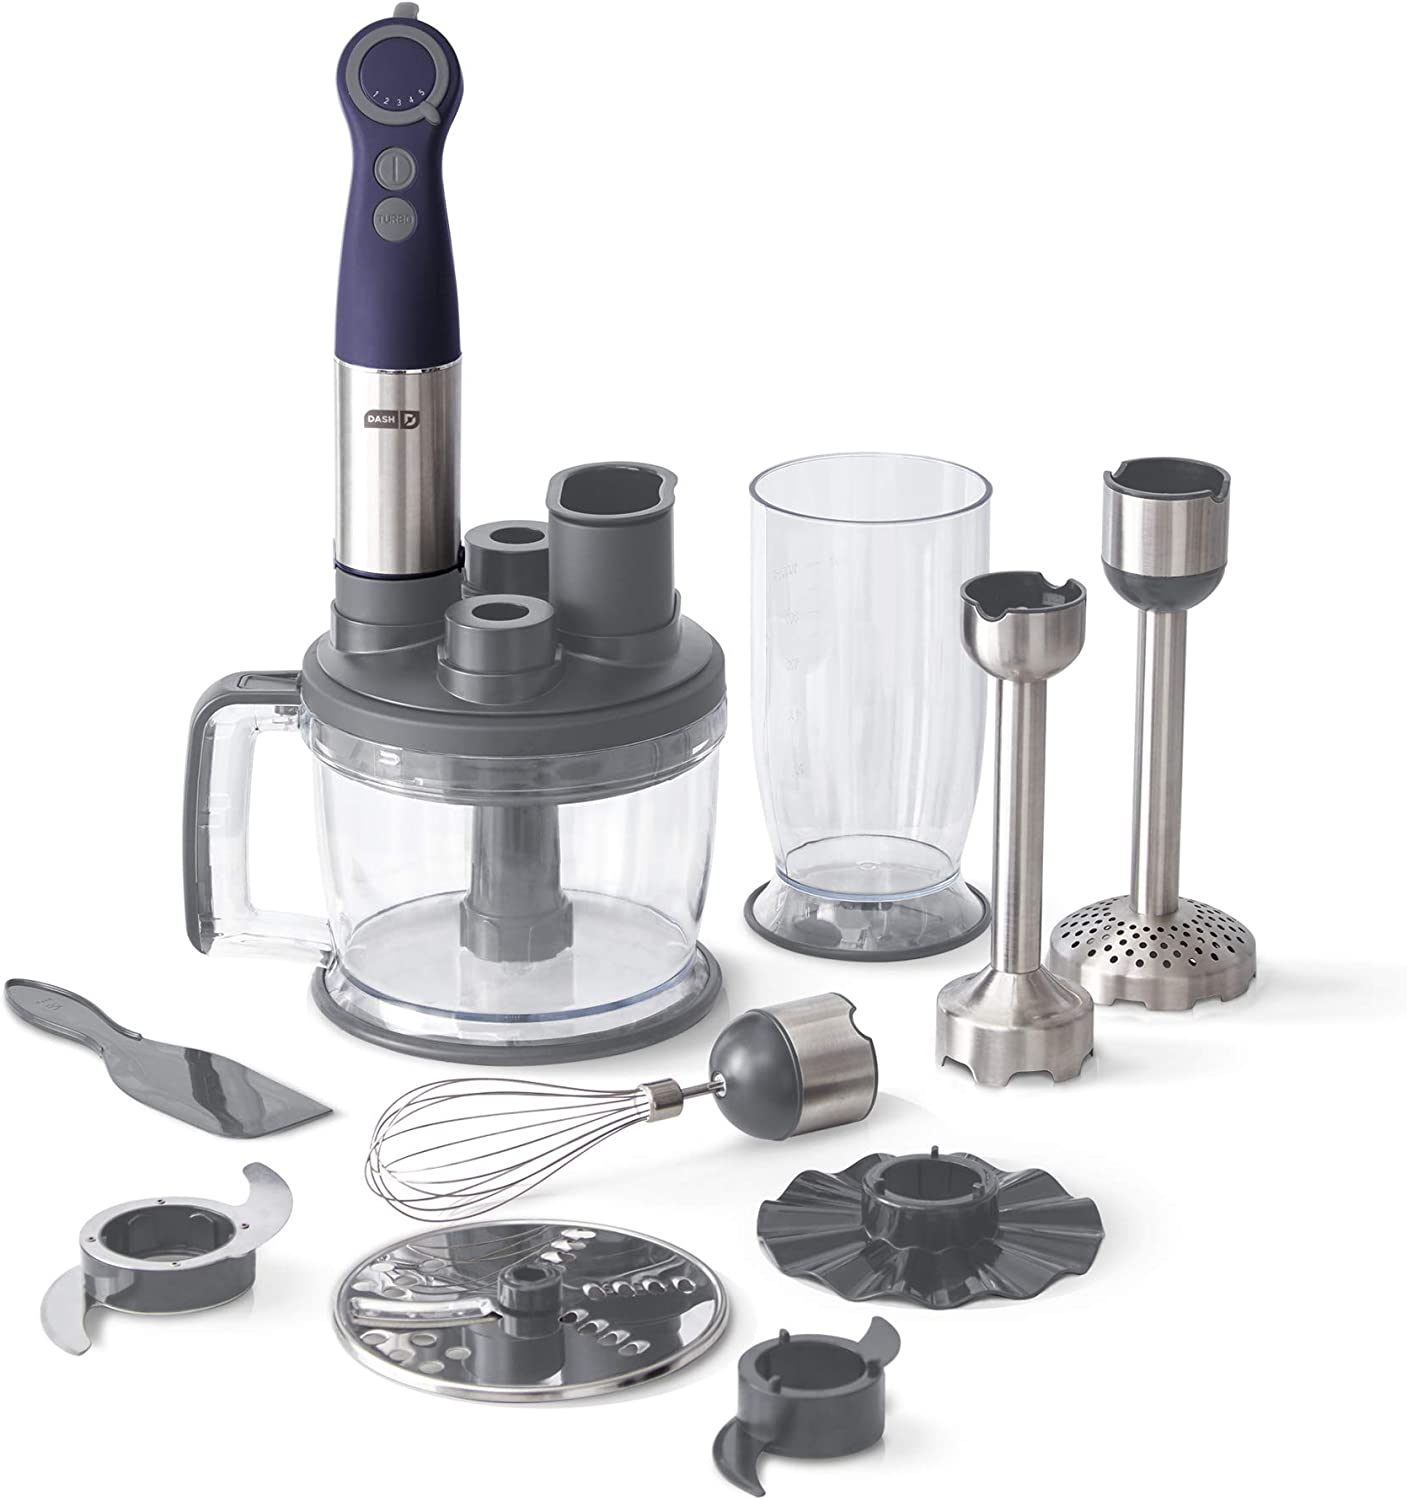 Dash Chef Series Deluxe Immersion Hand Blender, 5 Speed Stick Blender with Stainless Steel Blades, Dough Hooks, Food Processor, Grate, Mash, Slice, Whisk Attachments and Recipe Guide – Midnight